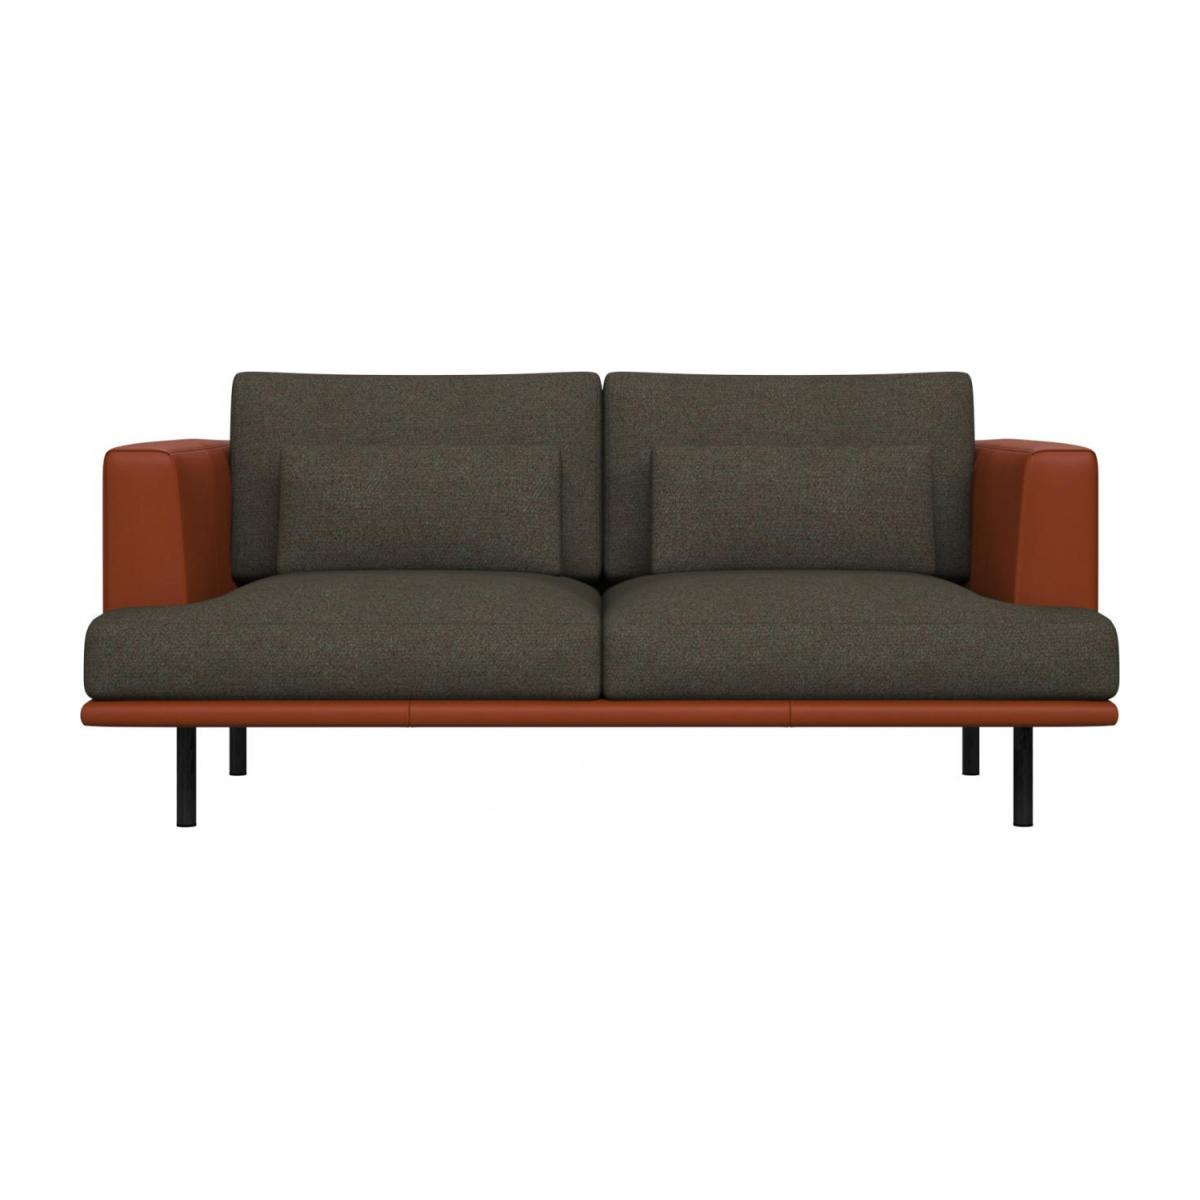 2 seater sofa in Lecce fabric, slade grey with base and armrests in brown leather n°2